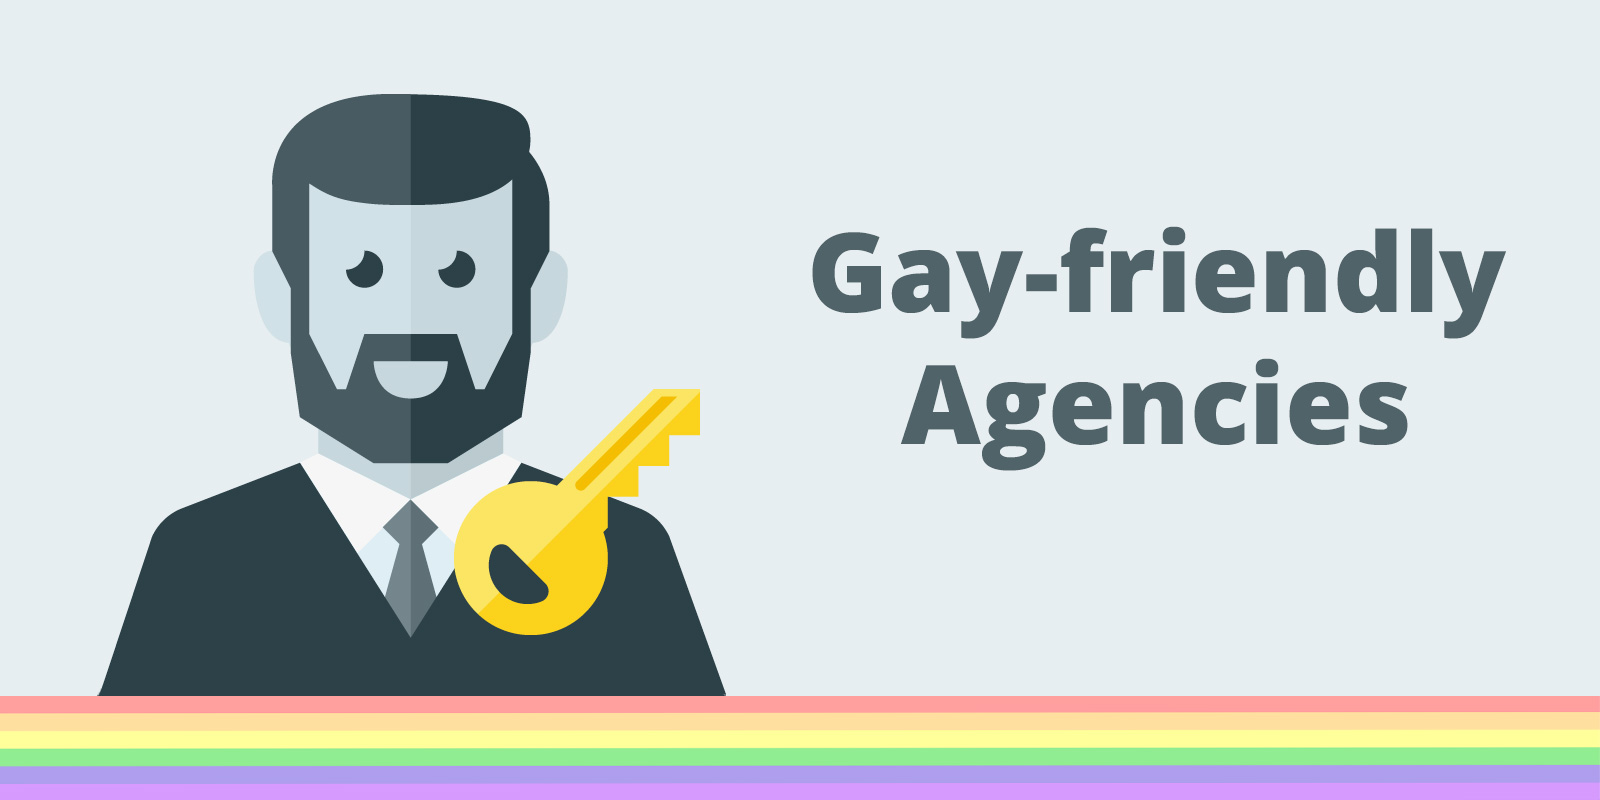 gay-friendly_agencies_1600x800-jpg